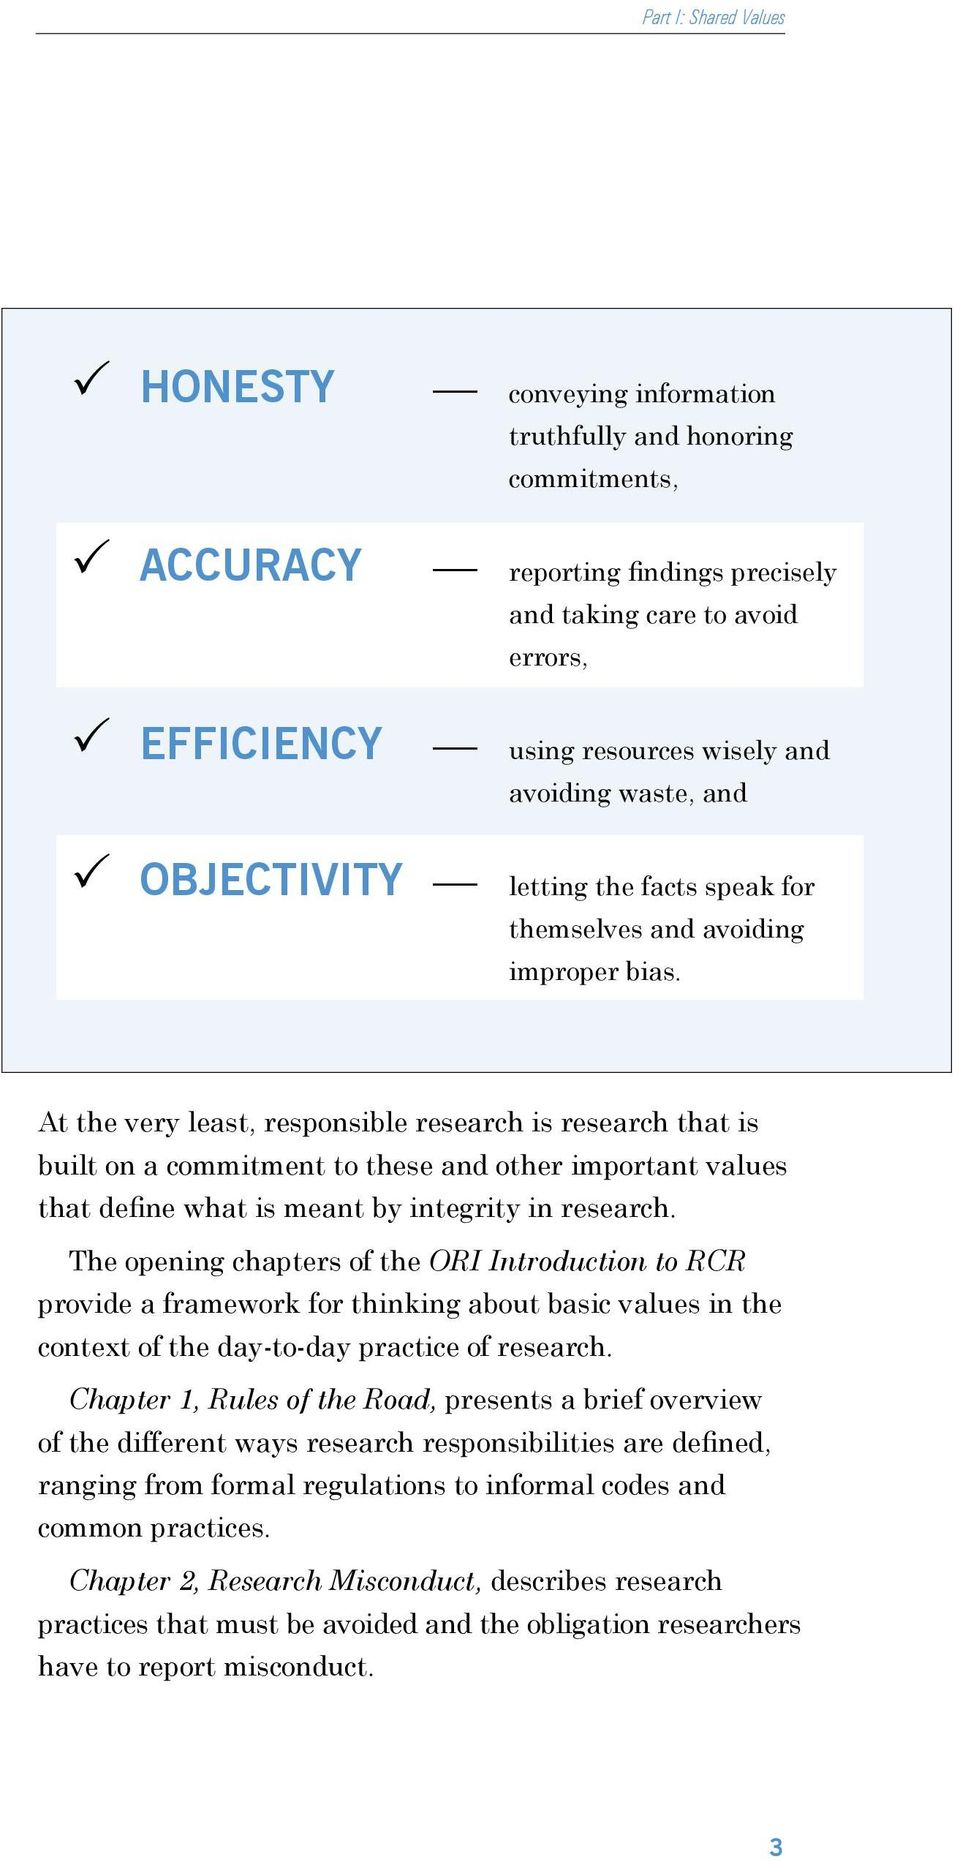 At the very least, resonsible research is research that is built on a commitment to these and other imortant values that define what is meant by integrity in research.